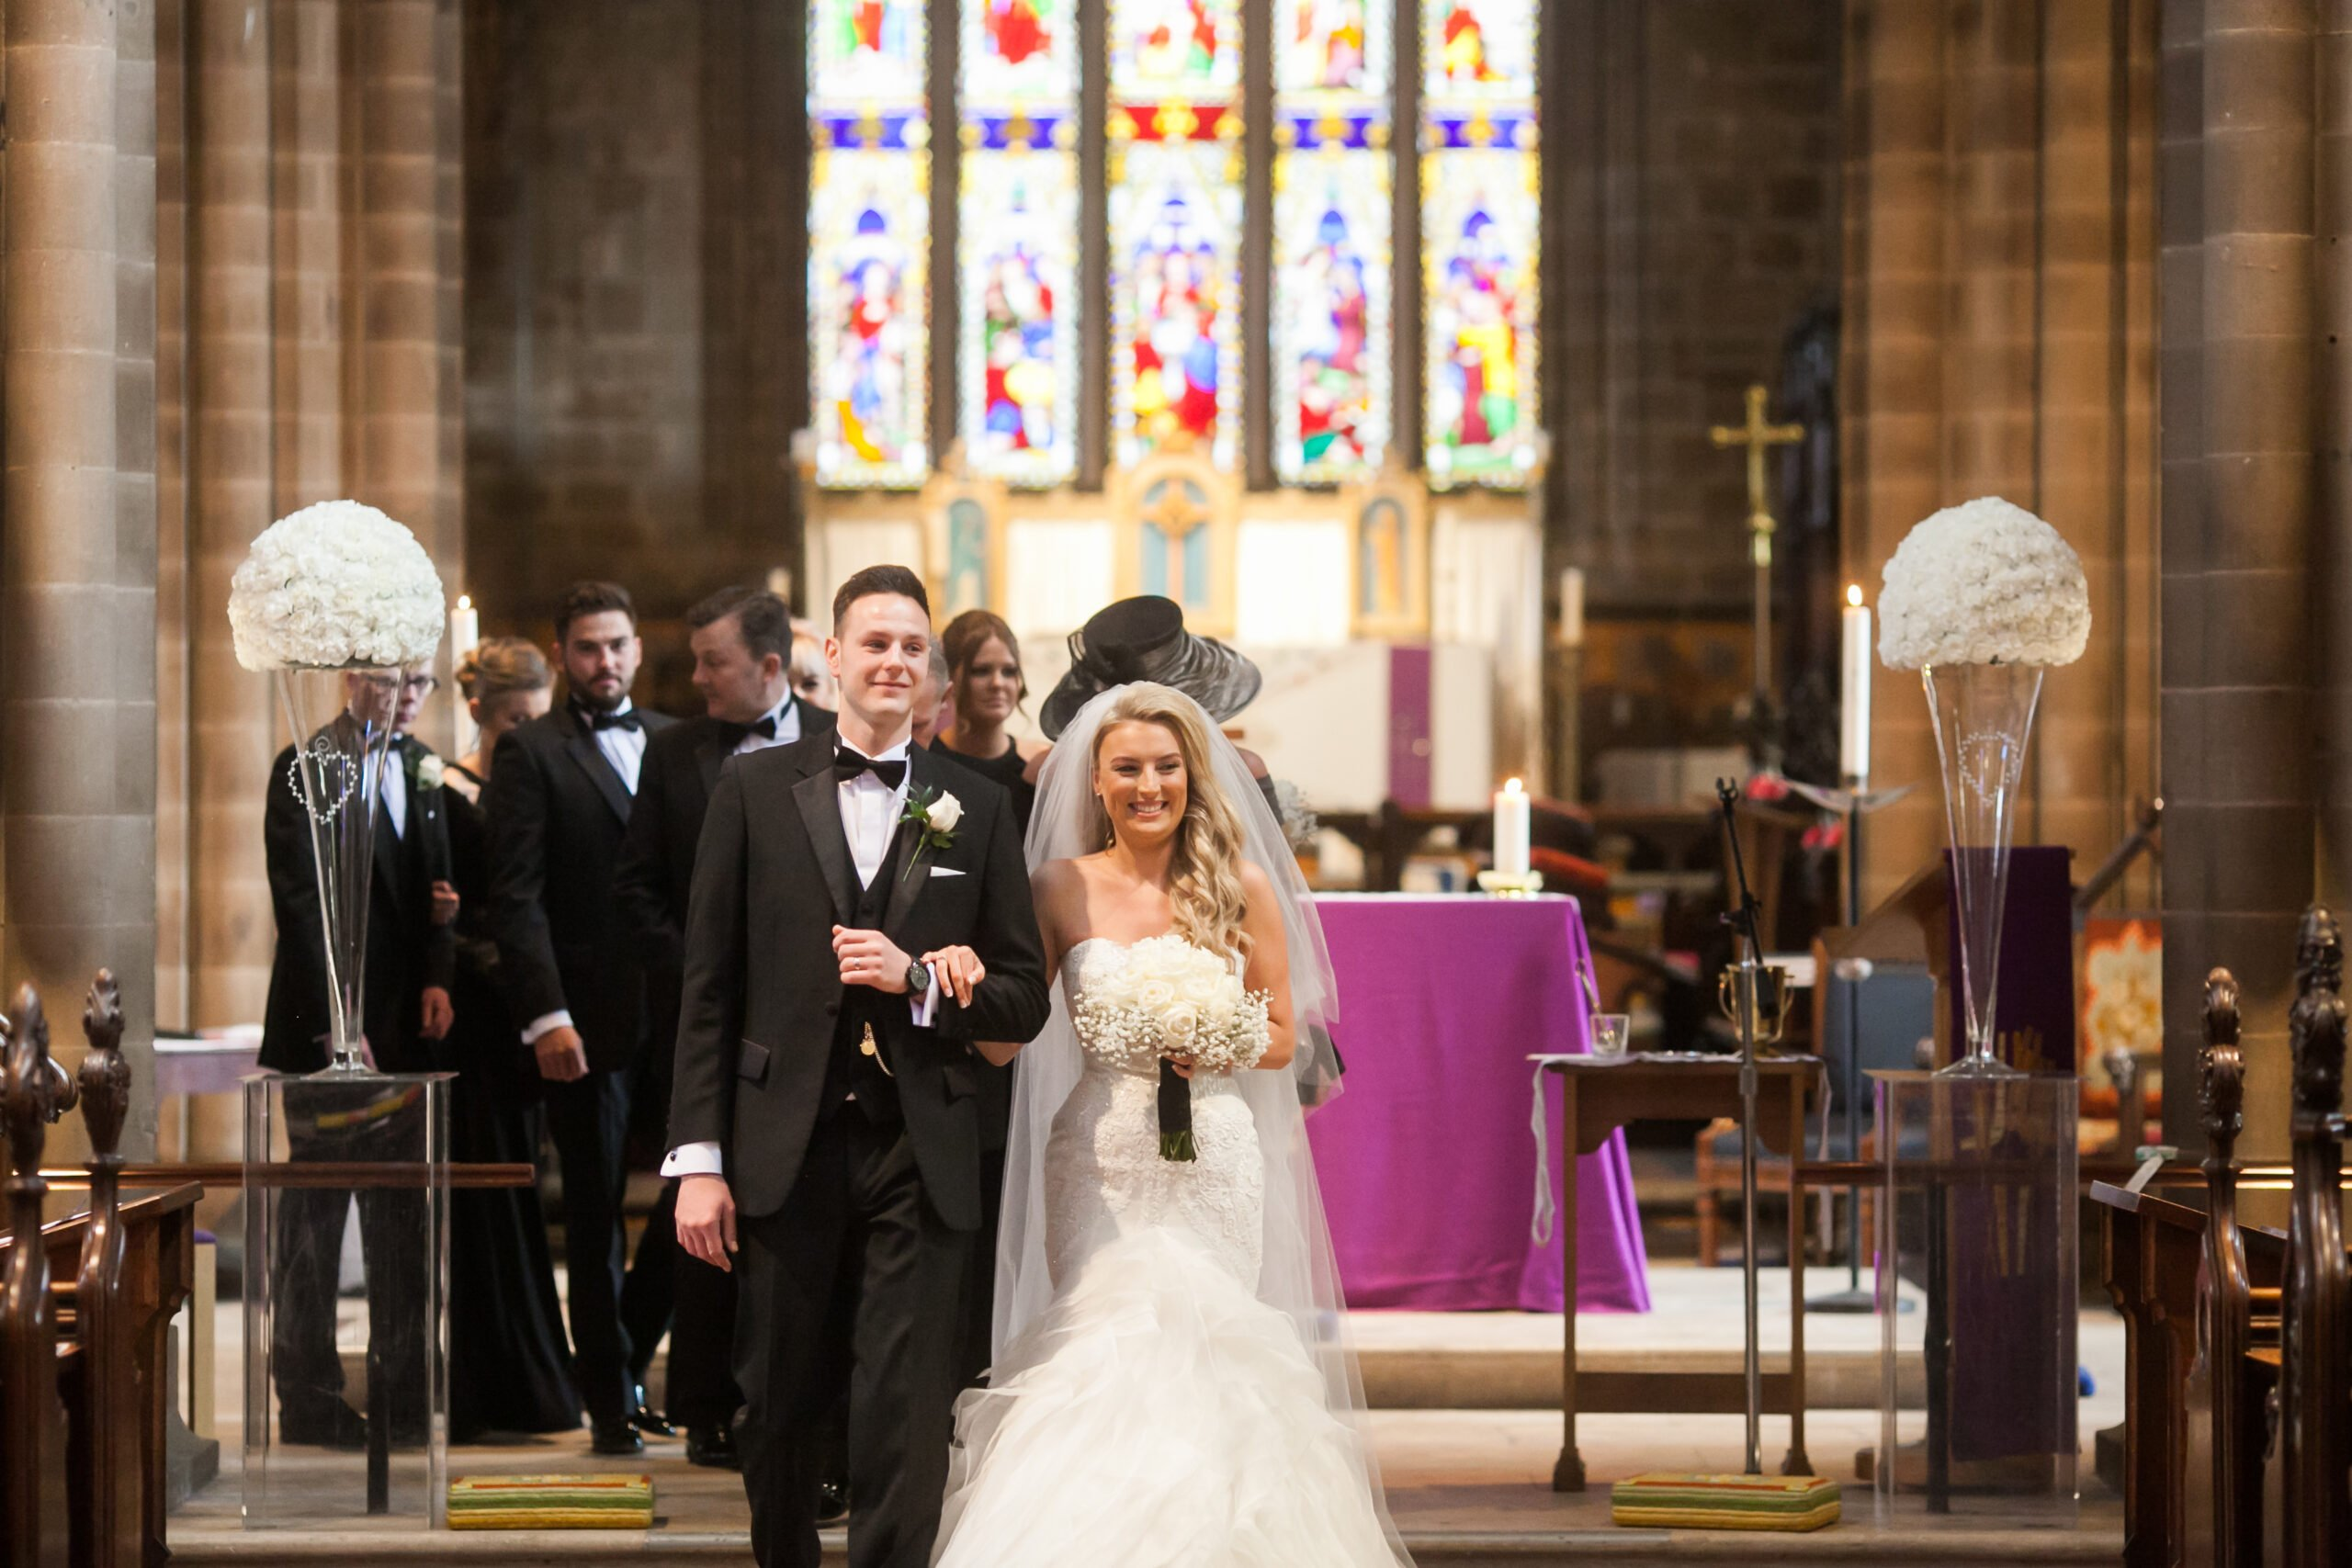 couple walking back down the aisle in the church